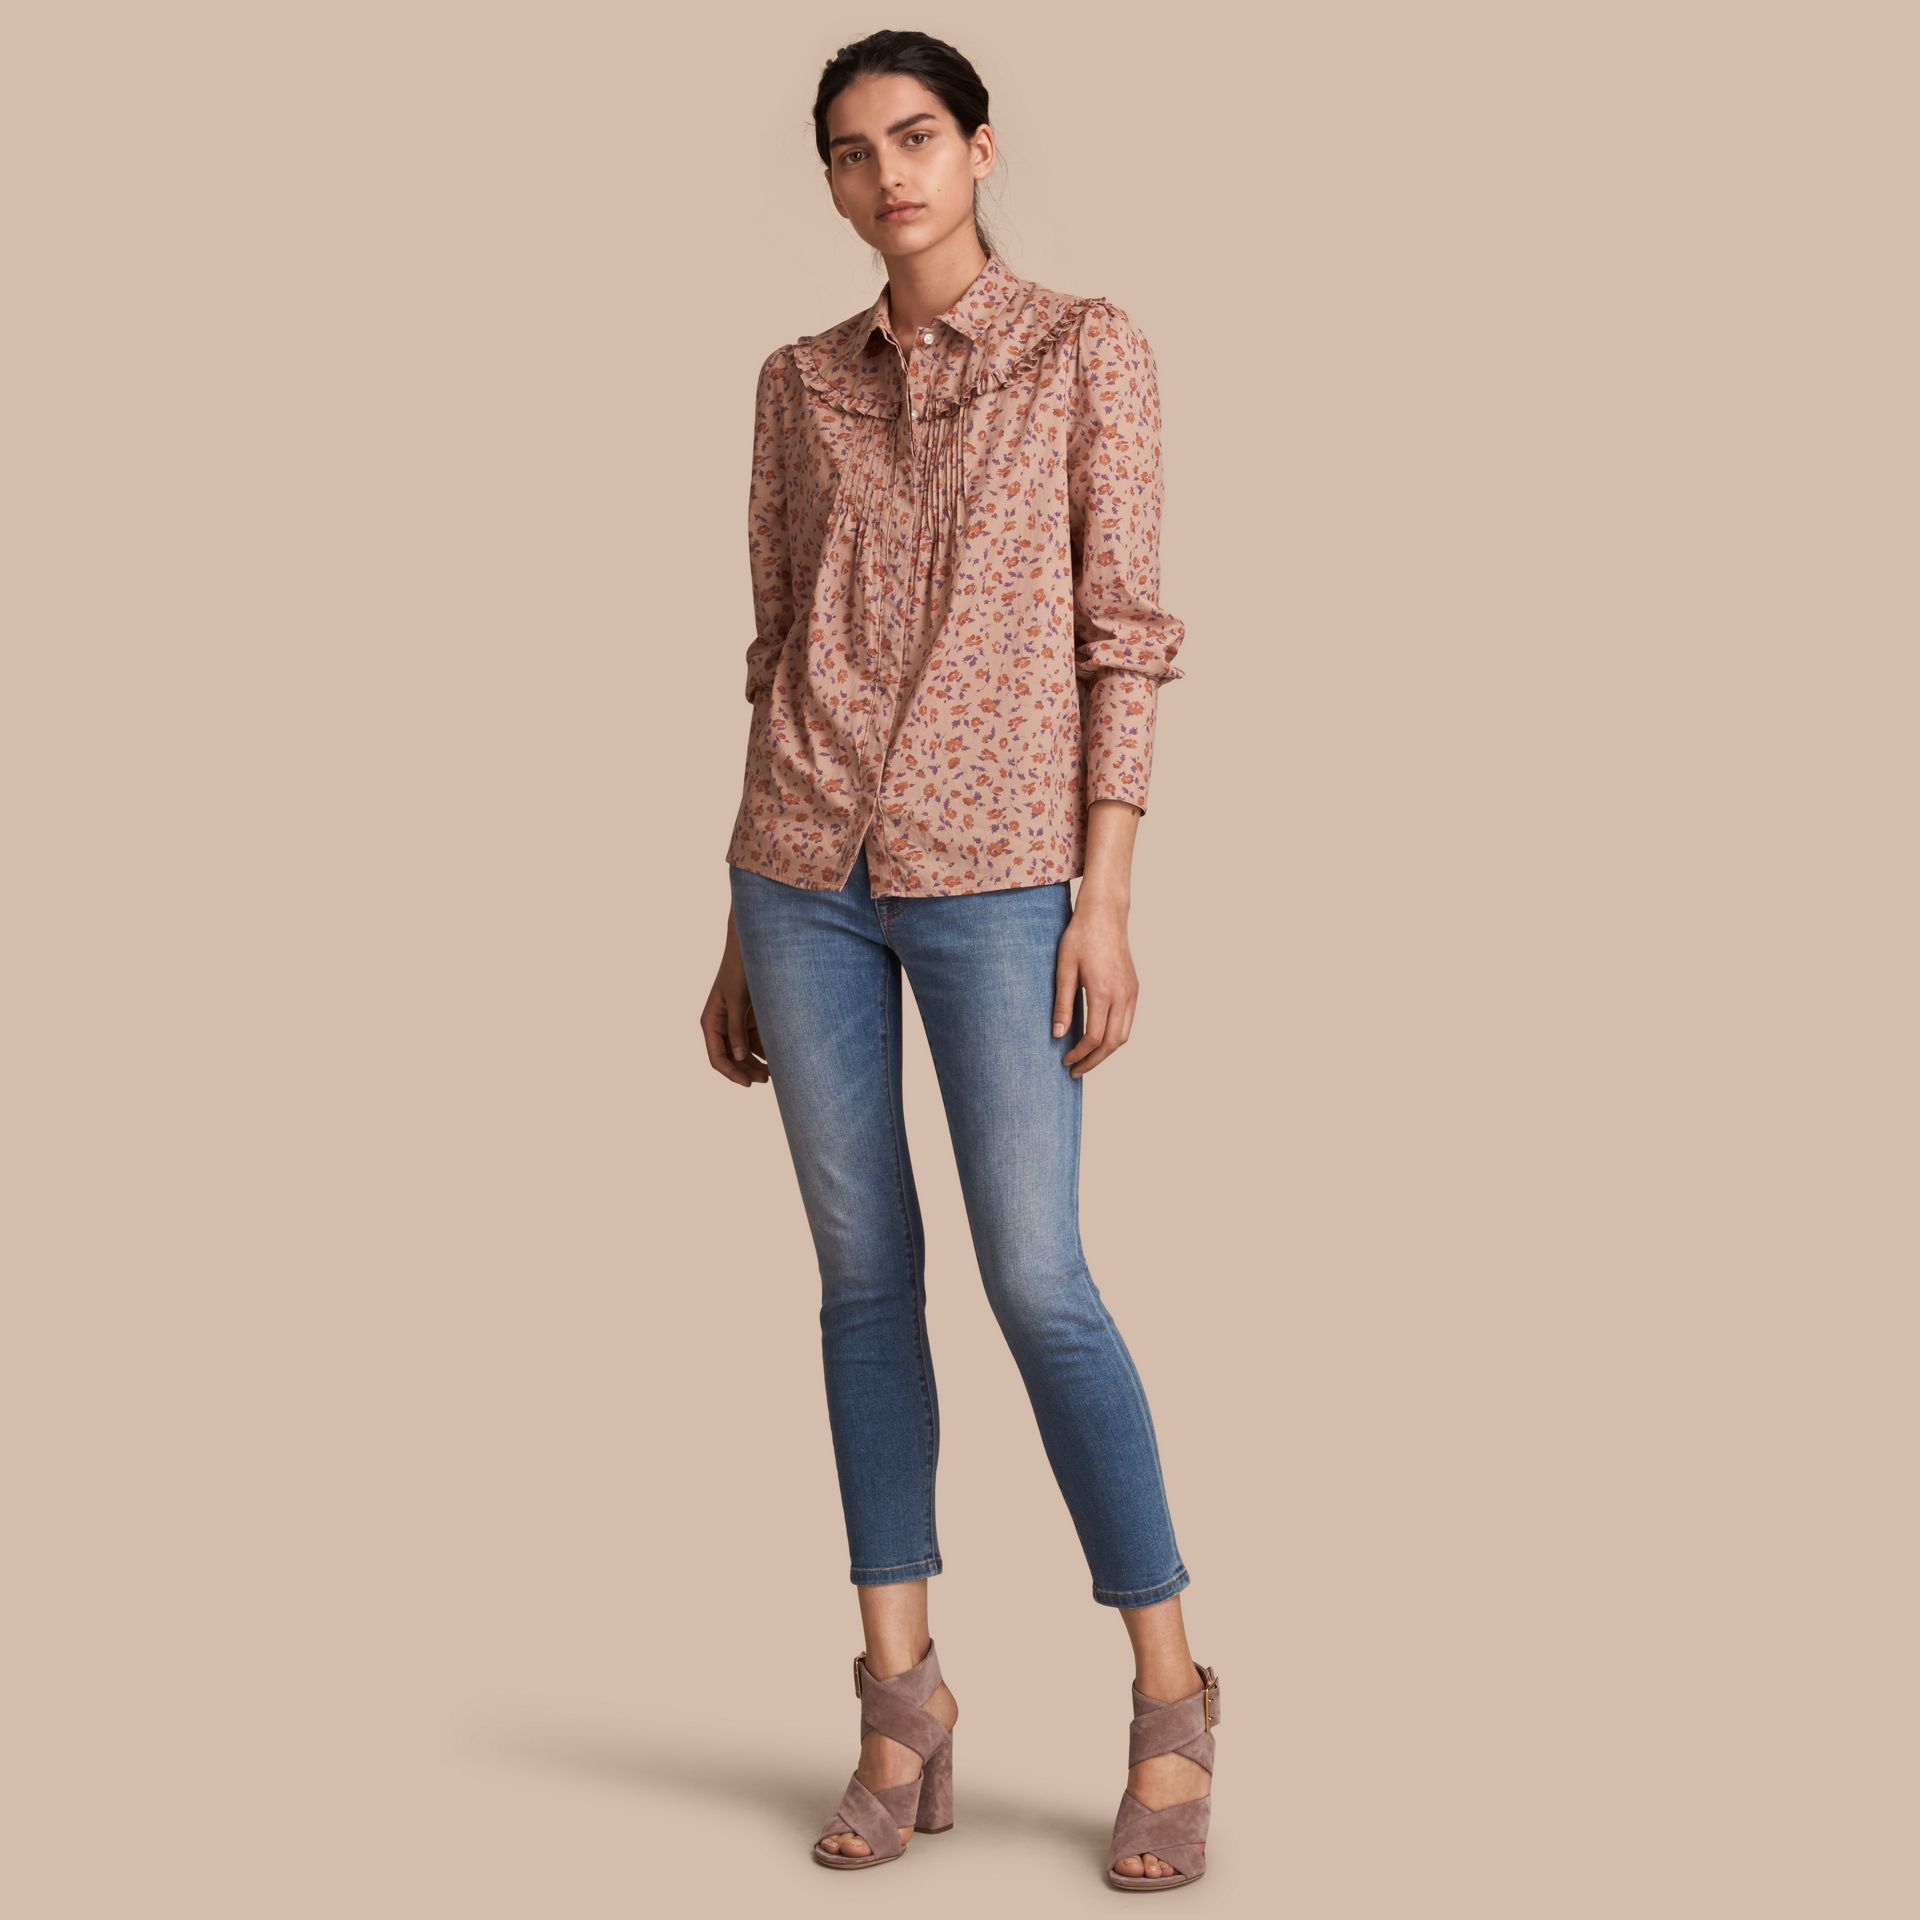 Ruffle Yoke Floral Print Cotton Shirt in Light Copper - Women | Burberry - gallery image 1